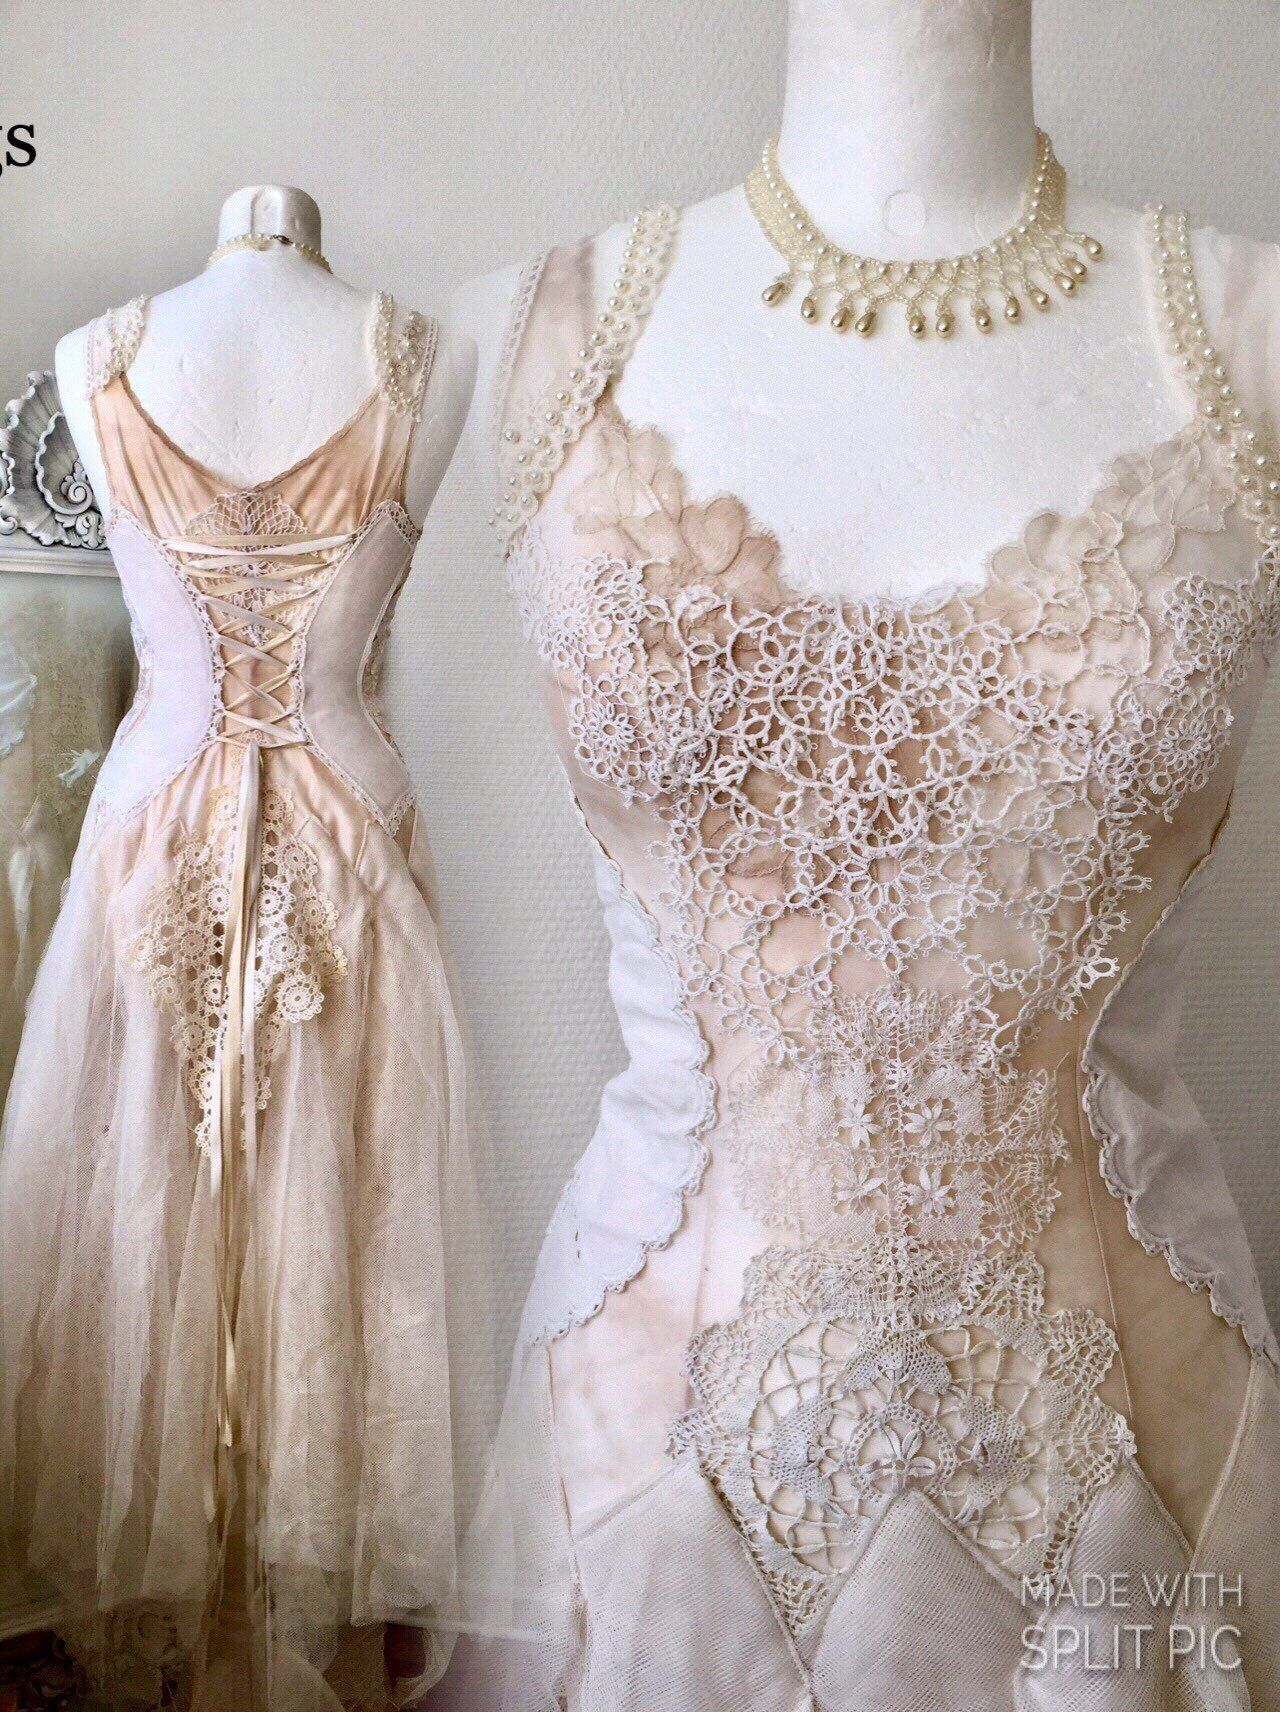 Excited to share this item from my etsy shop boho wedding dress